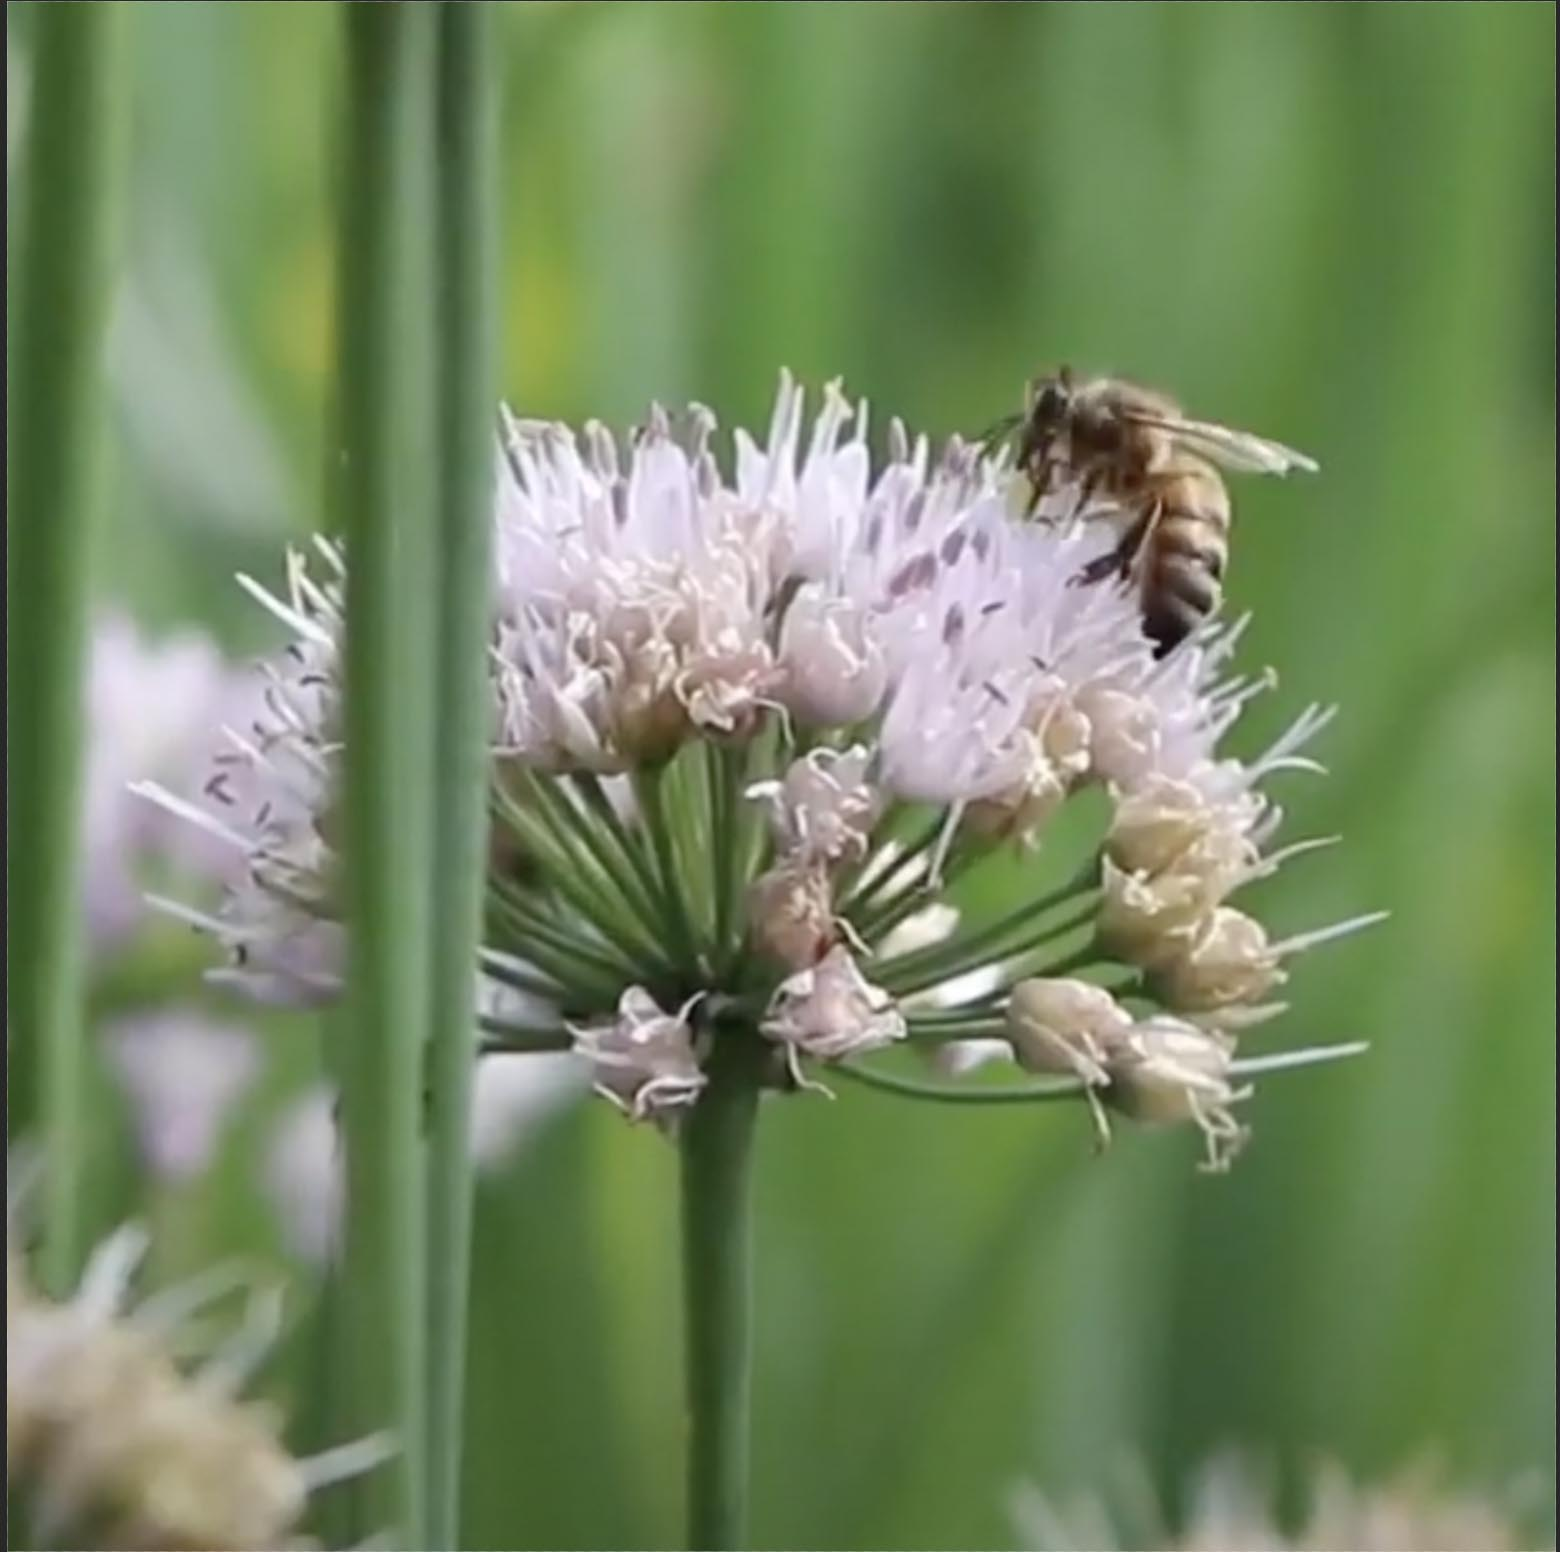 Ever Wonder Where Honey Comes From?